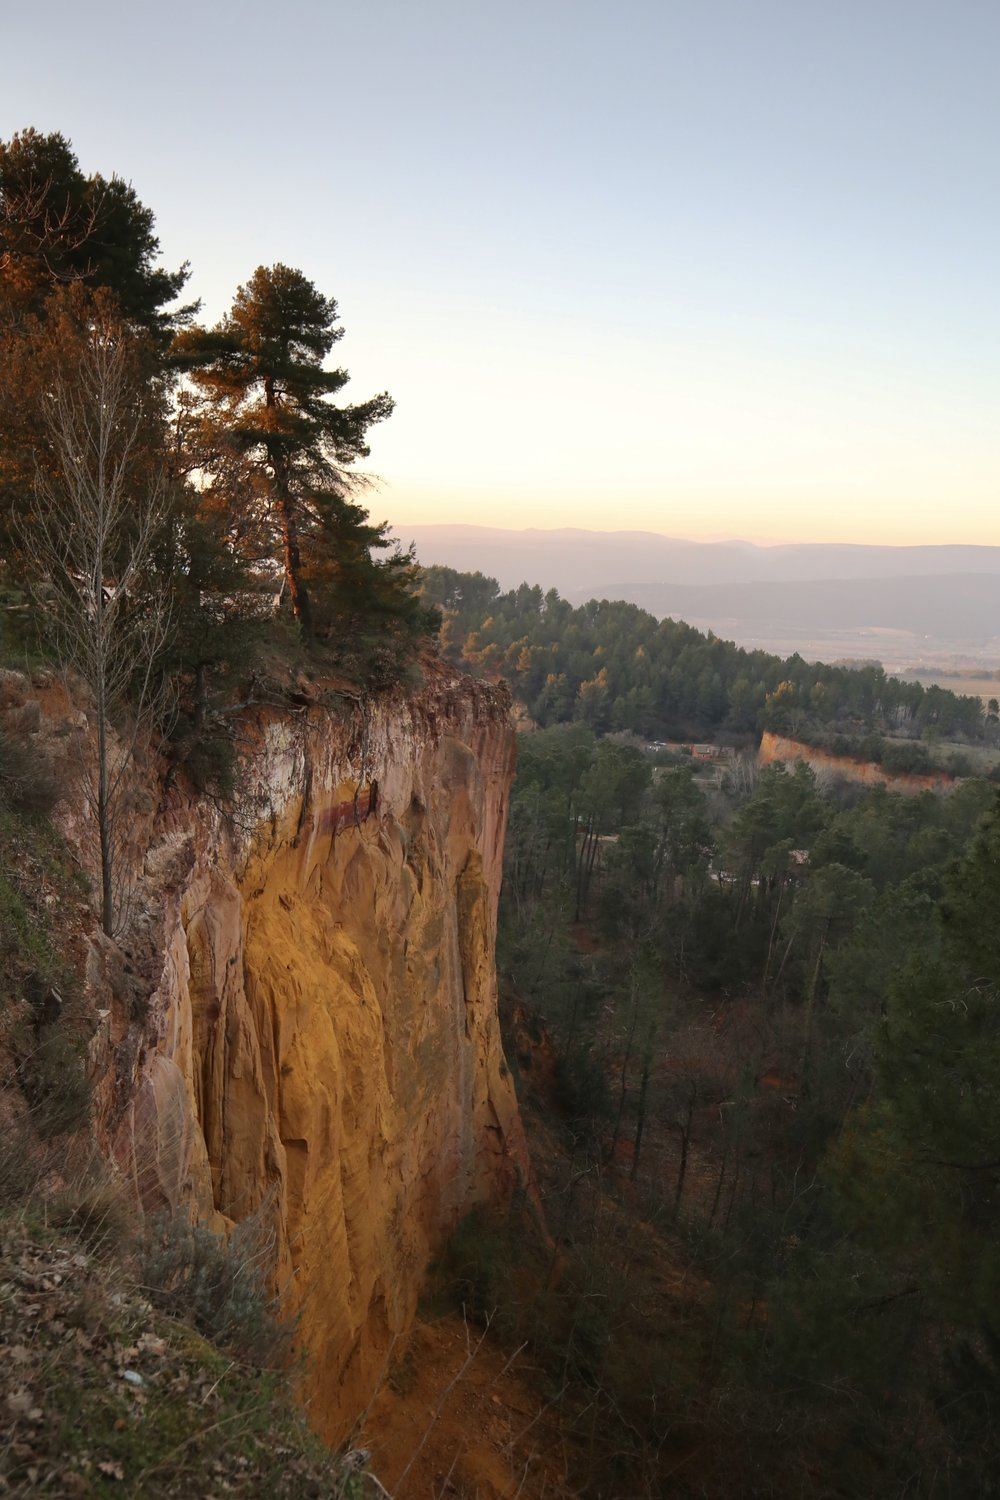 The ochre cliffs of Roussillon, France, at sunset.